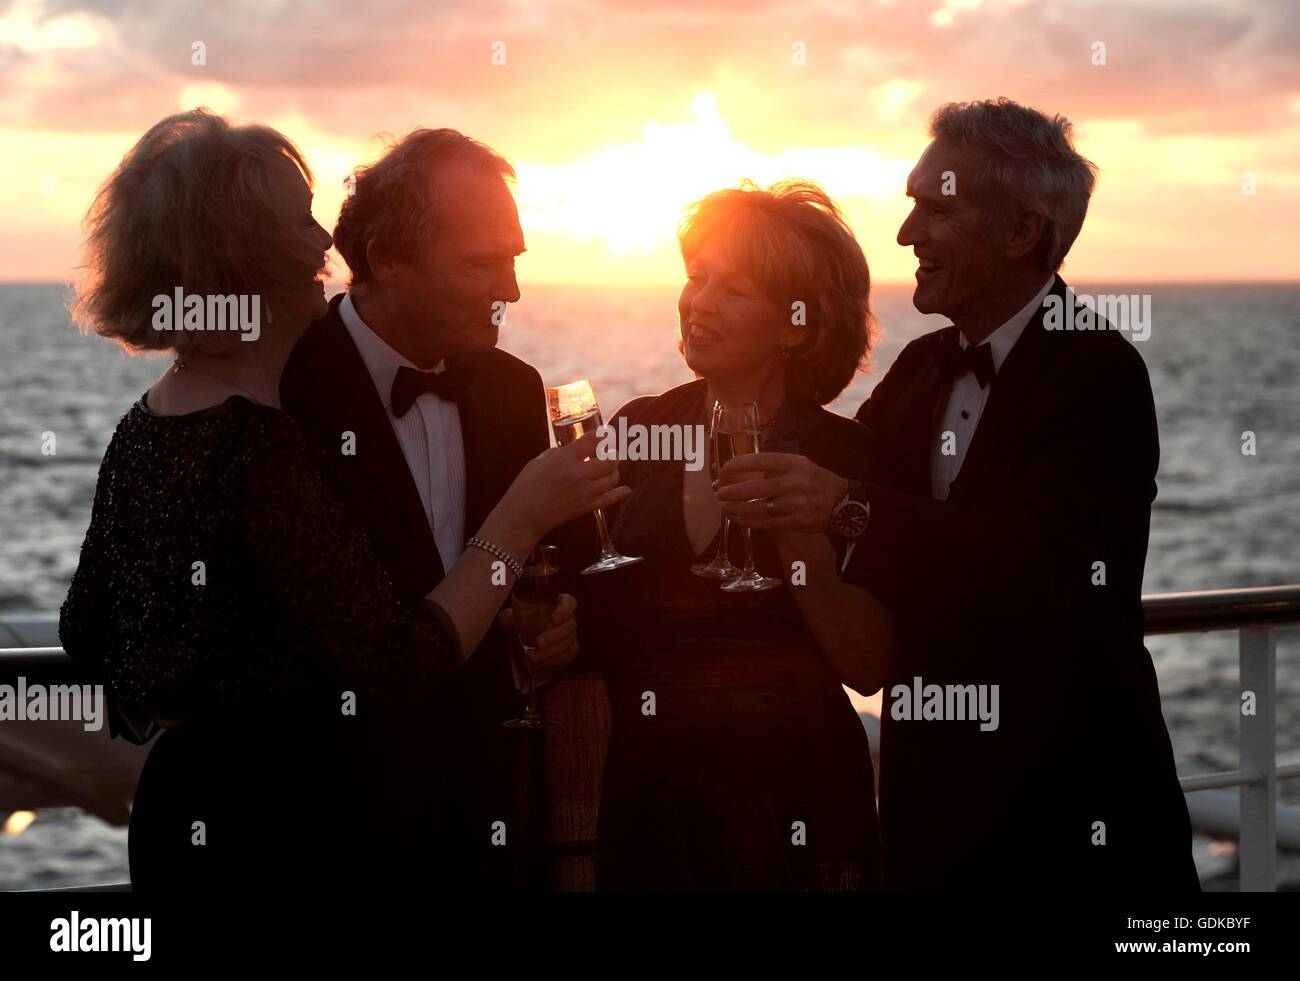 Two couples drinking champaign on a cruise ship deck at sunset - Stock Image